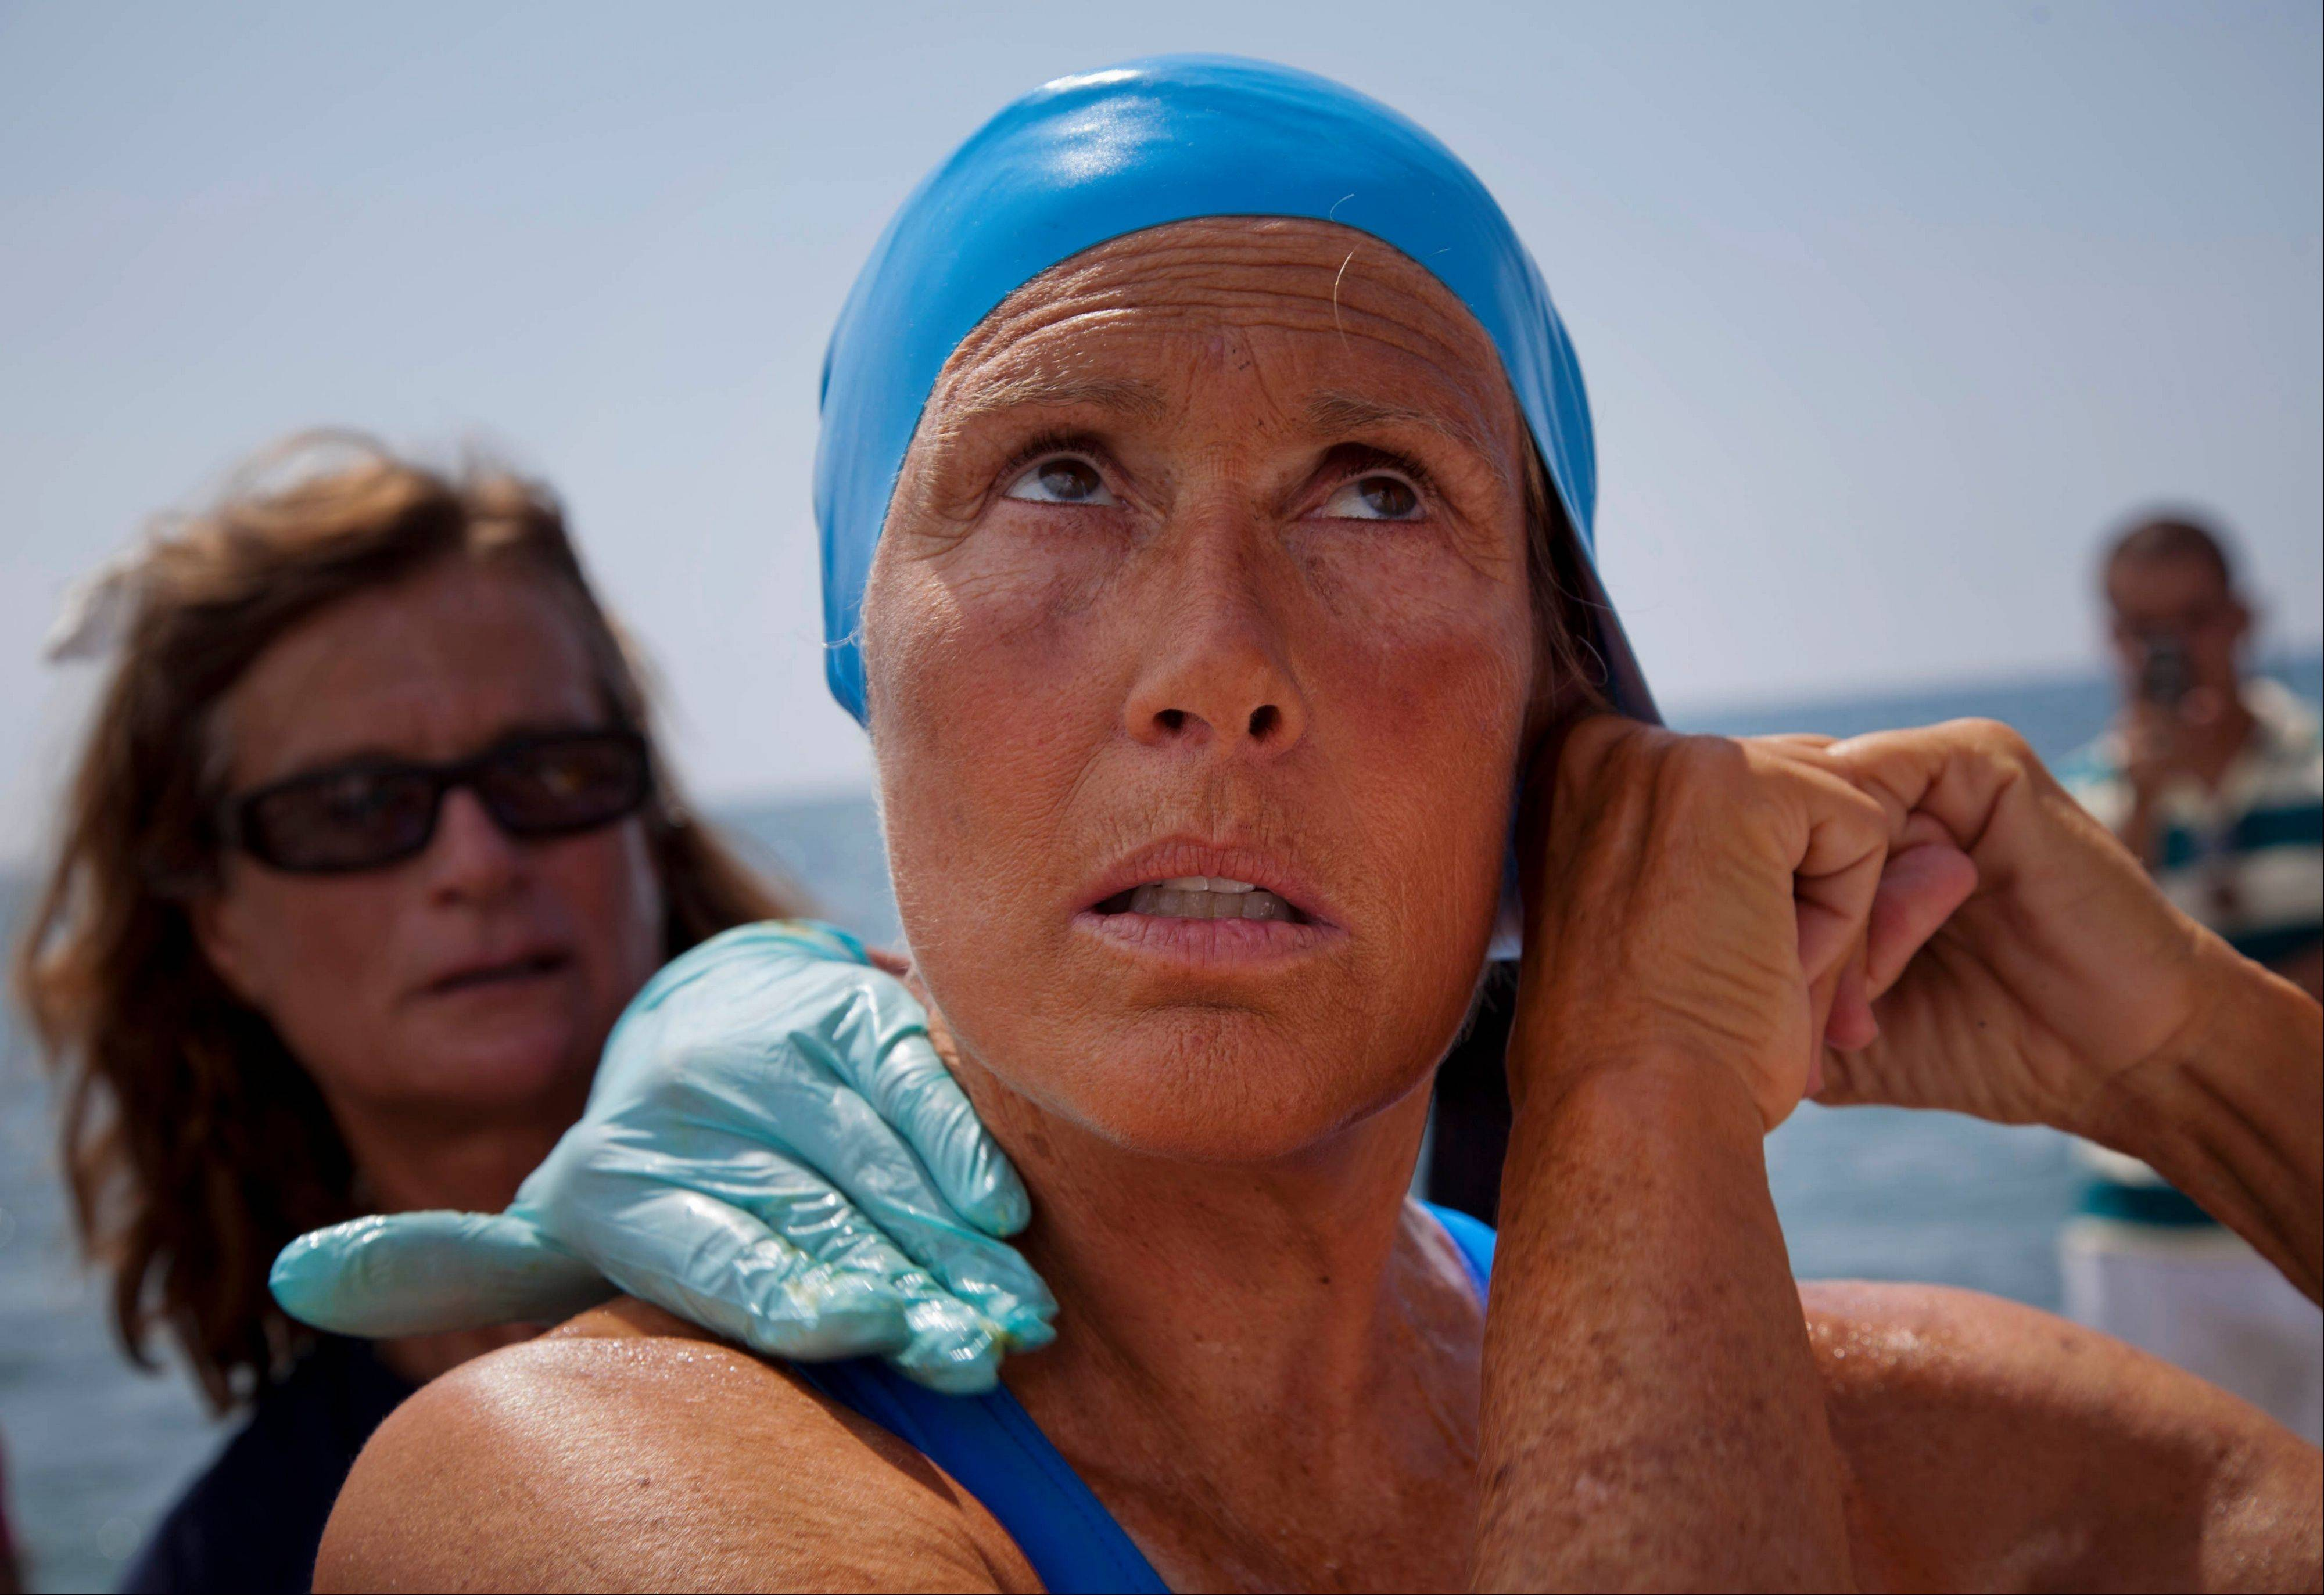 Diana Nyad is back on shore after a failed fourth attempt to swim across the Straits of Florida.